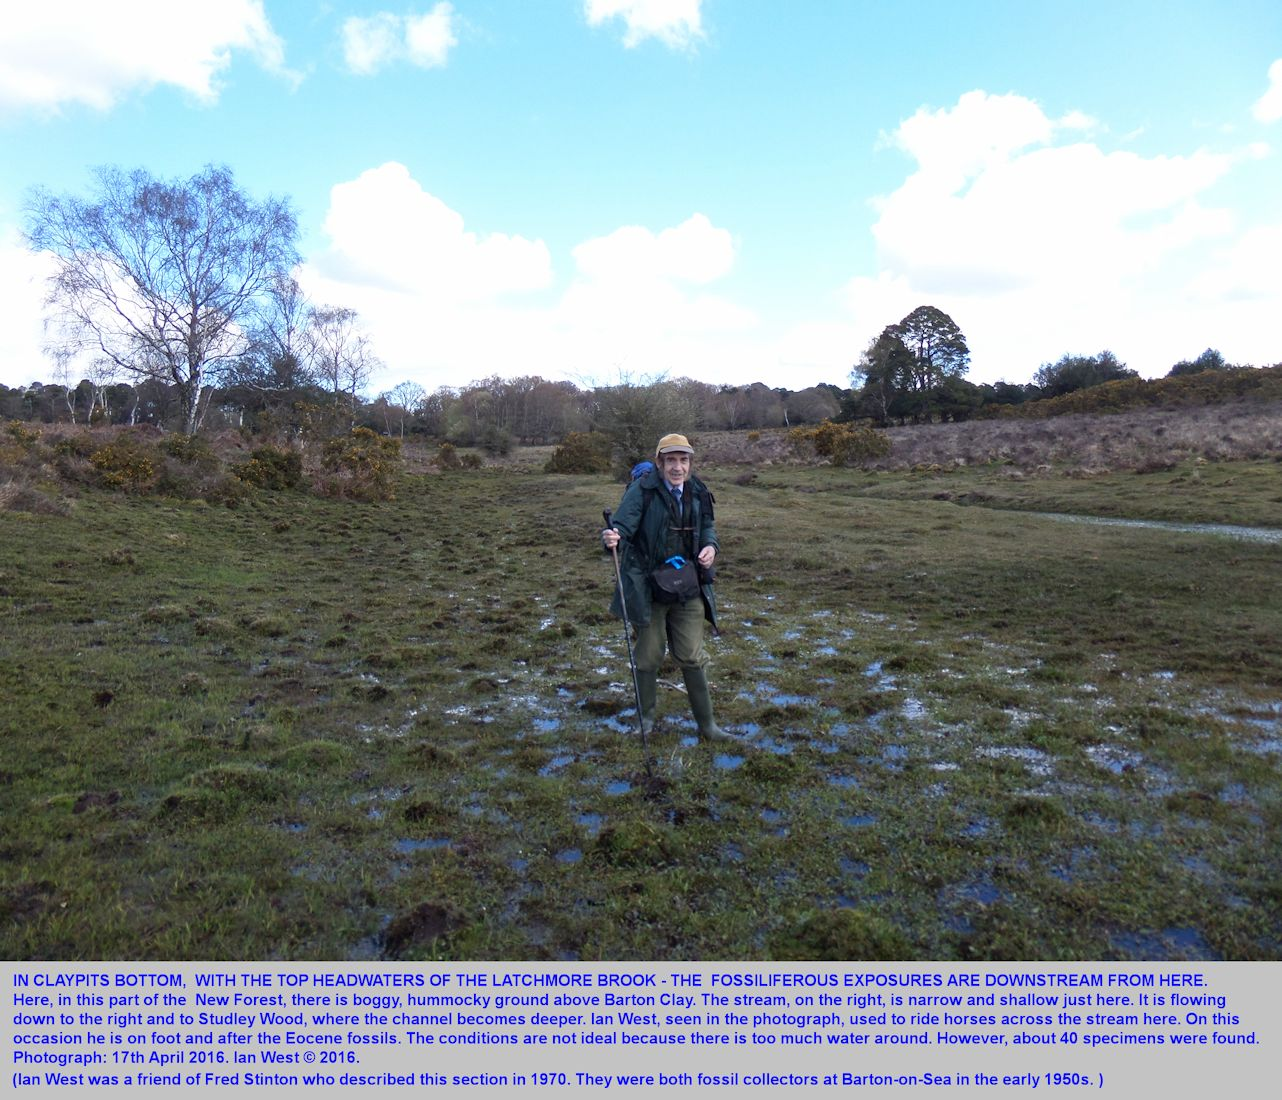 Ian West at Claypits Bottom, upstream from the Studley Wood, fossiliferous Eocene exposure, New Forest National Park, April 2016